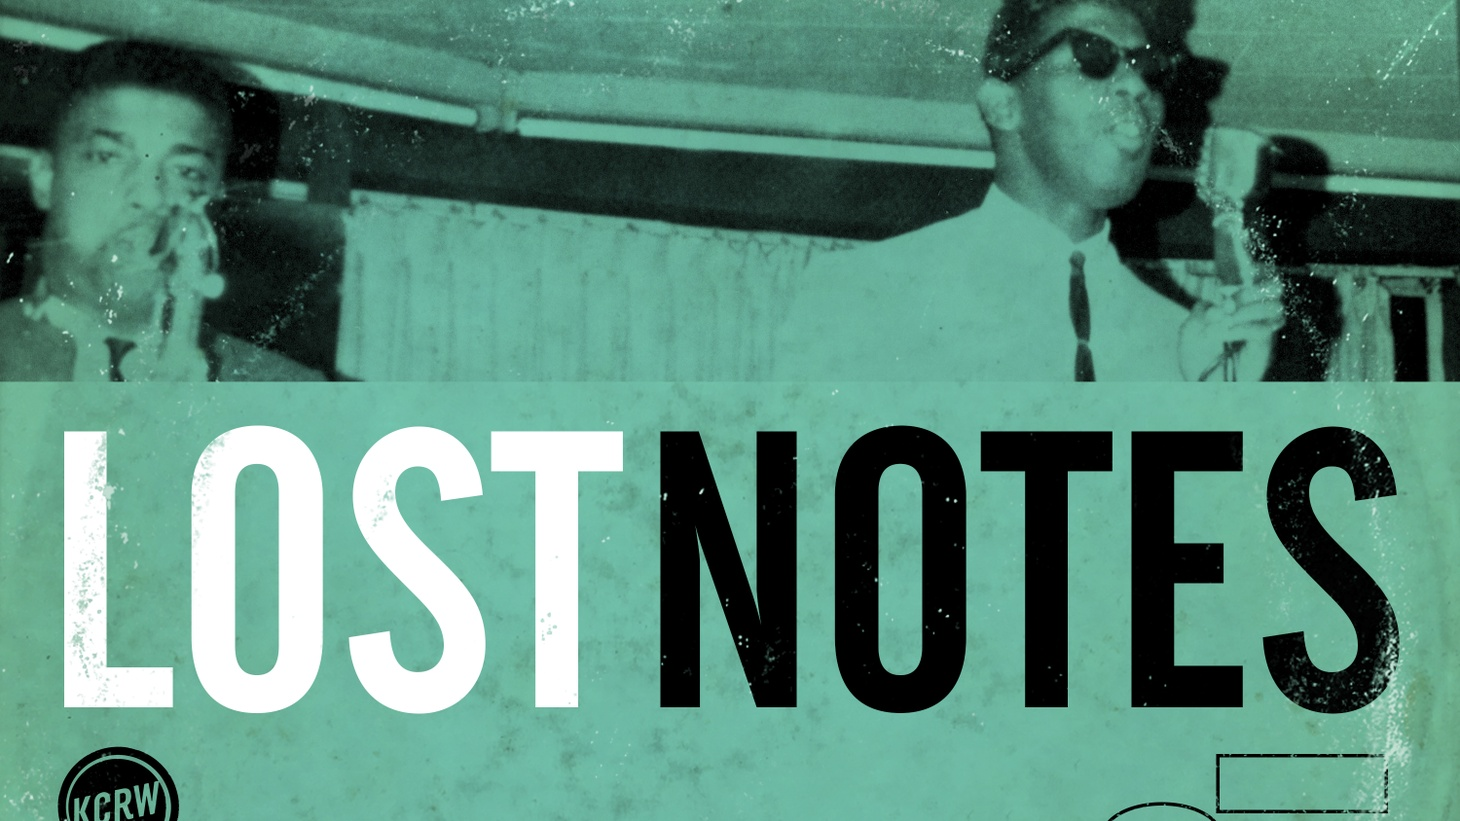 Hear a preview of Lost Notes, an anthology of some of the greatest music stories never truly told. Top journalists present stand-alone audio documentaries that highlight music's head, heart and beat, with host Solomon Georgio as your guide.